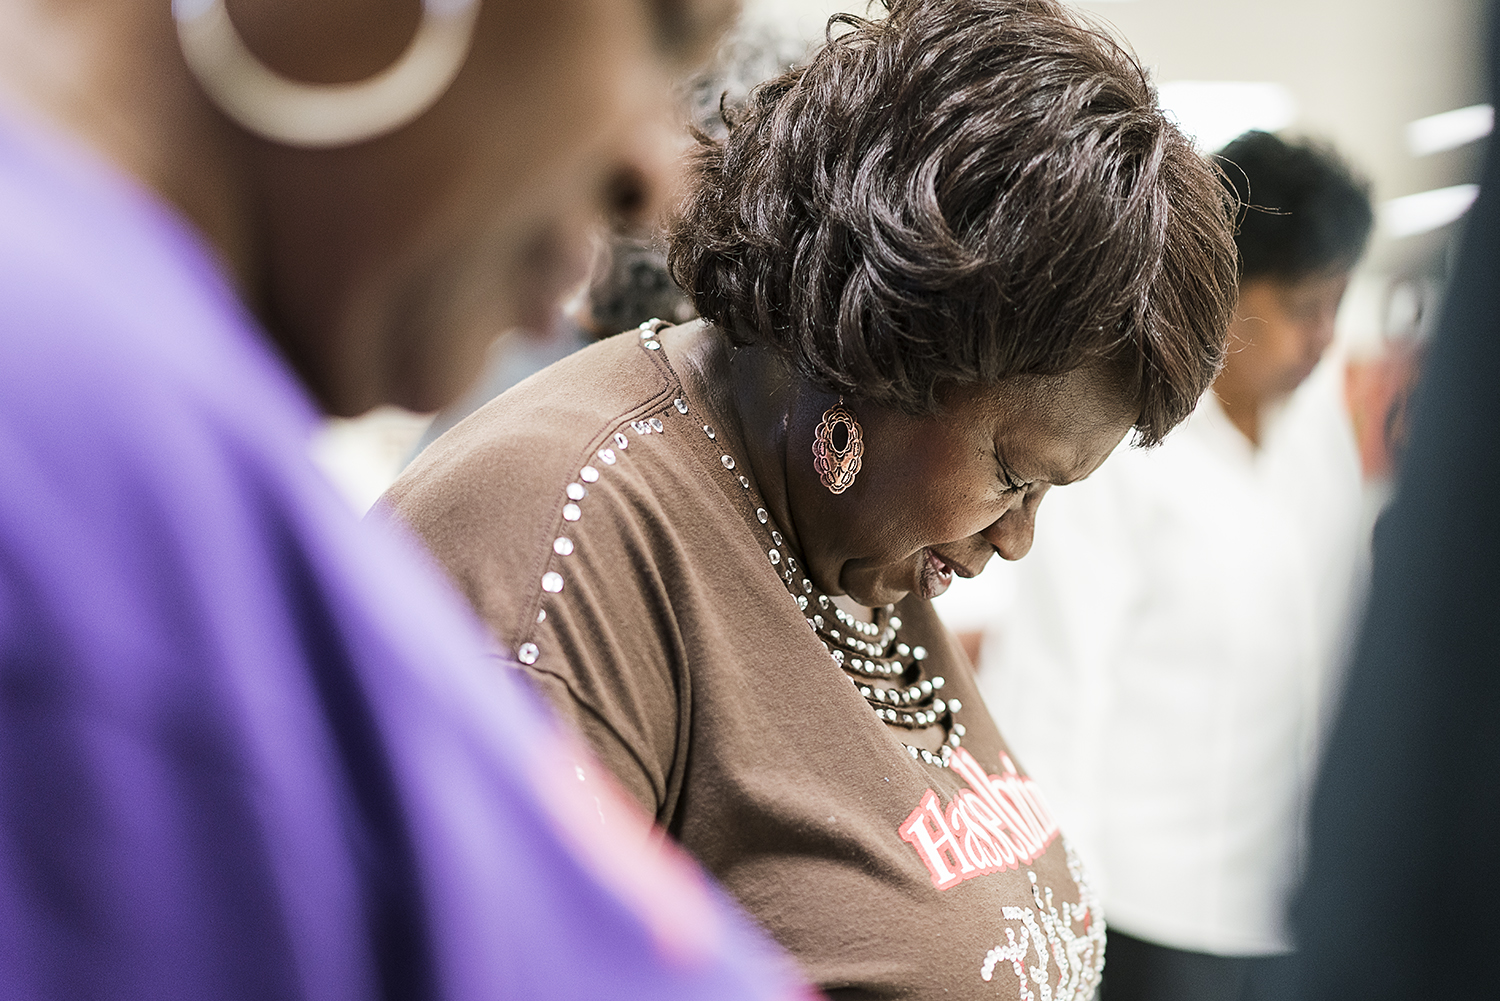 Flint, MI - Tuesday, October 24, 2017: Hasselbring Hustlers committee chairperson Marva Johnson, from Flint, bows her head during the closing prayer after nearly two hours of dancing at the Hasselbring Senior Community Center.